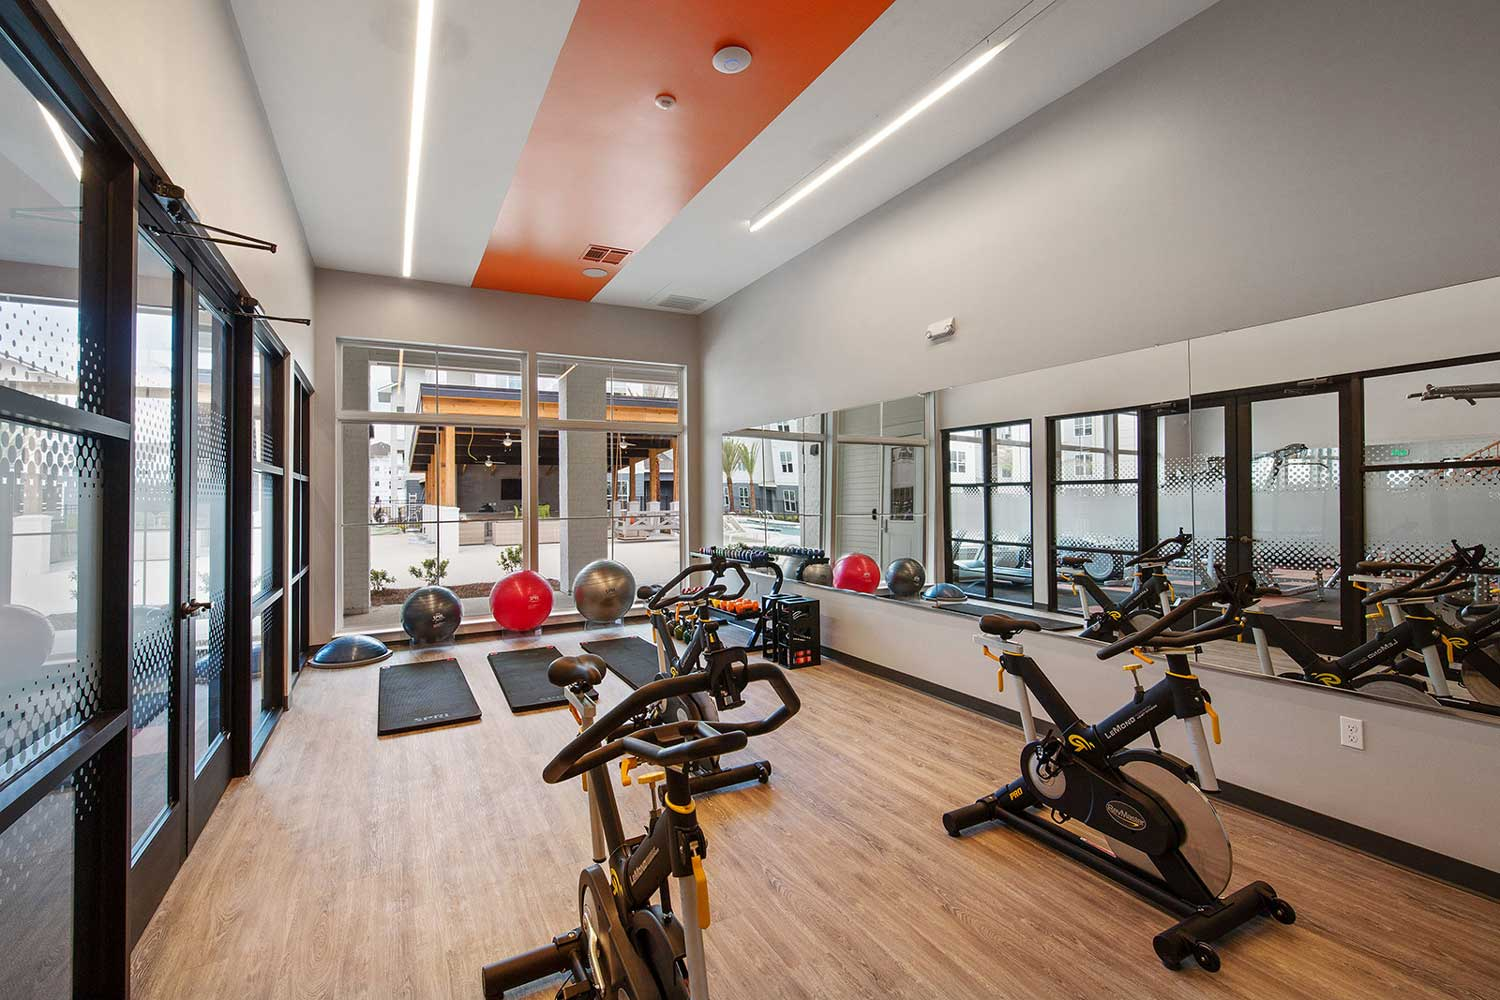 1500+ Square Foot Fitness Center and Yoga Room at Sawgrass Point in Gonzales, Louisiana